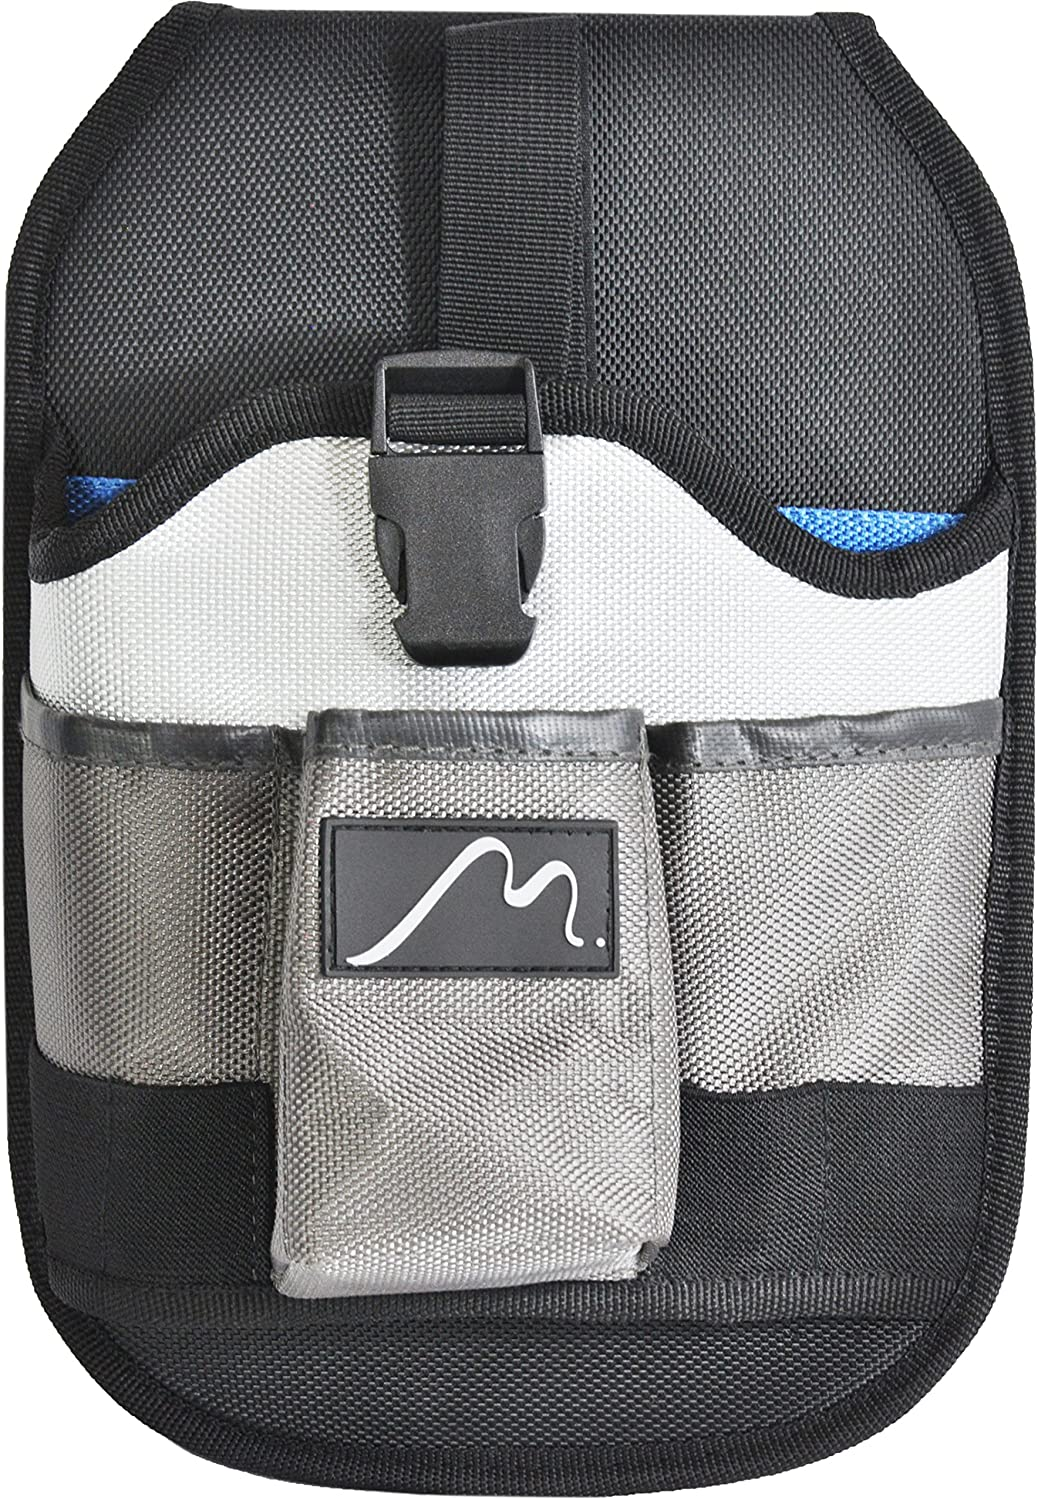 Cordless Drill Holster by Metier Life   Magnetic Organizer Pouches for Drill Bits and Extenders   Large Open Pocket for Screws and Accessories   Left or Right Handed Use (Grey)